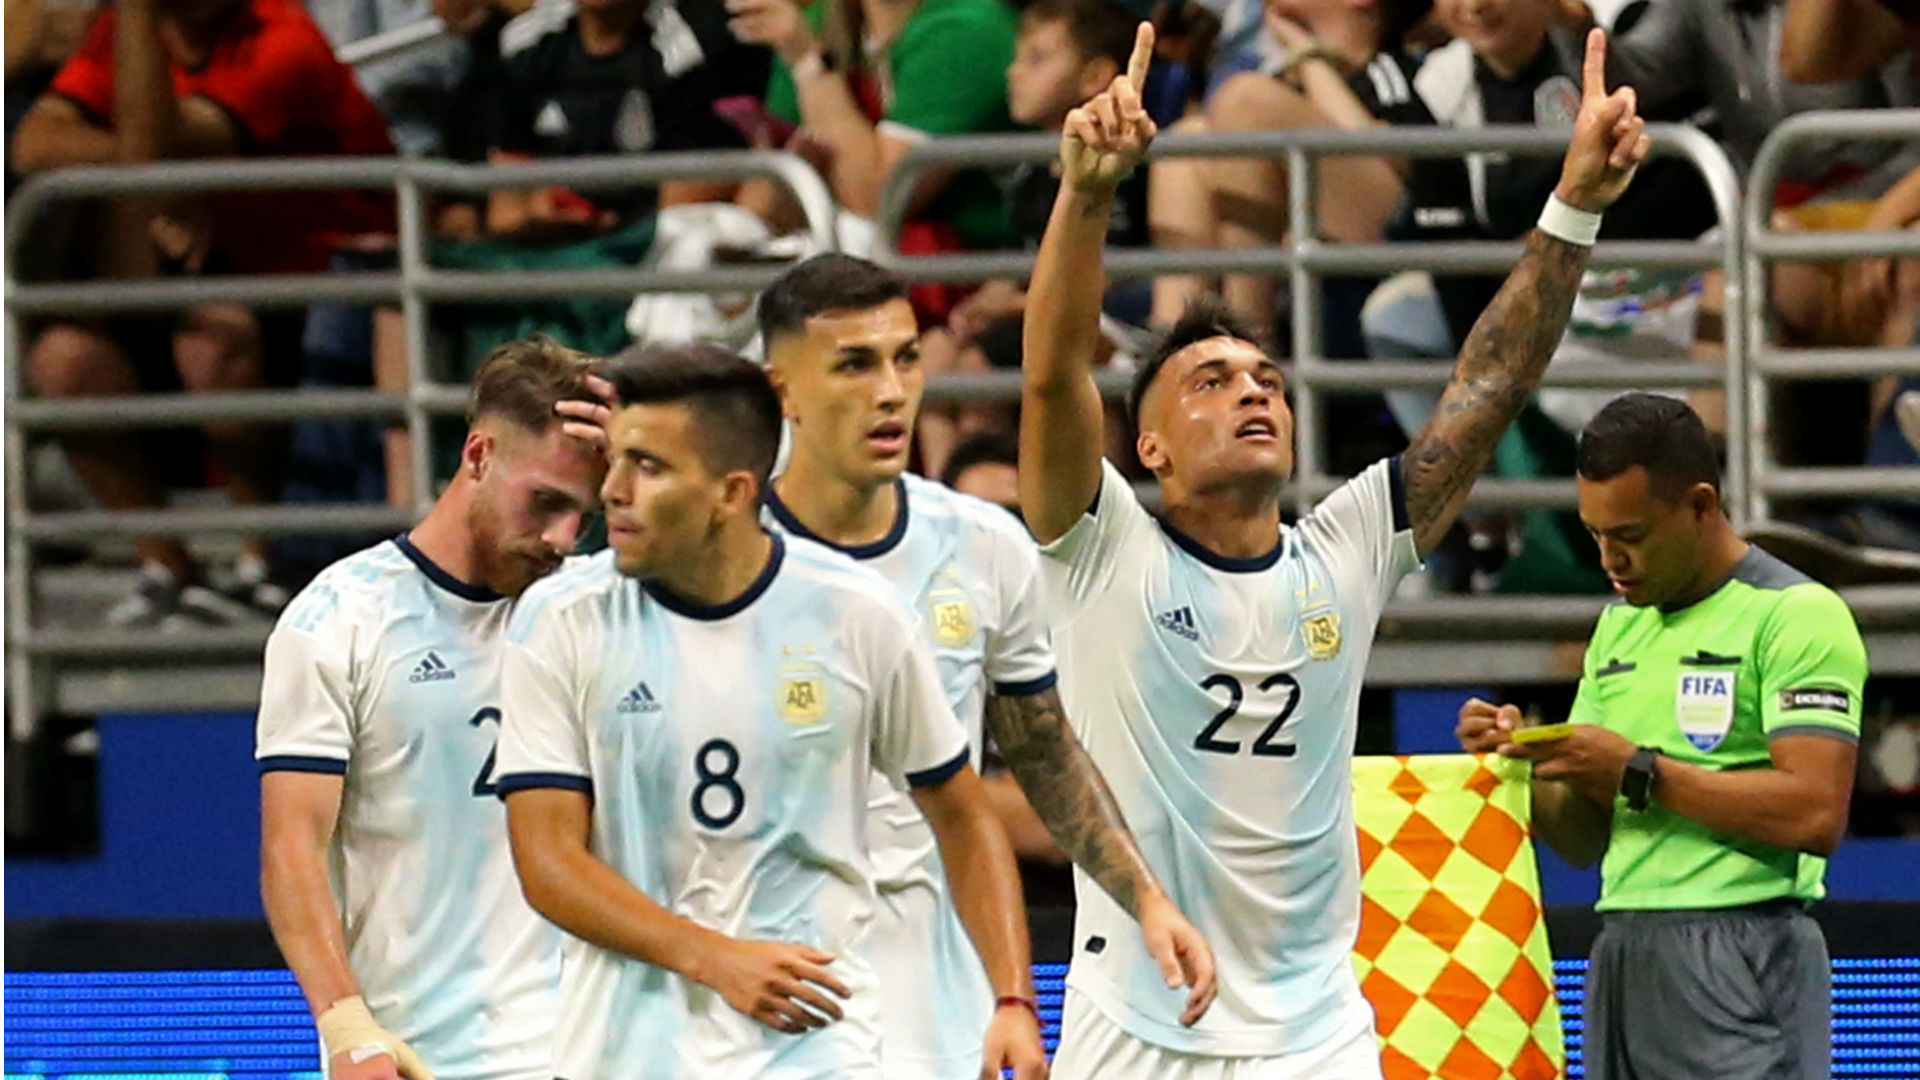 Martinez leads Argentina to Mexico thrashing